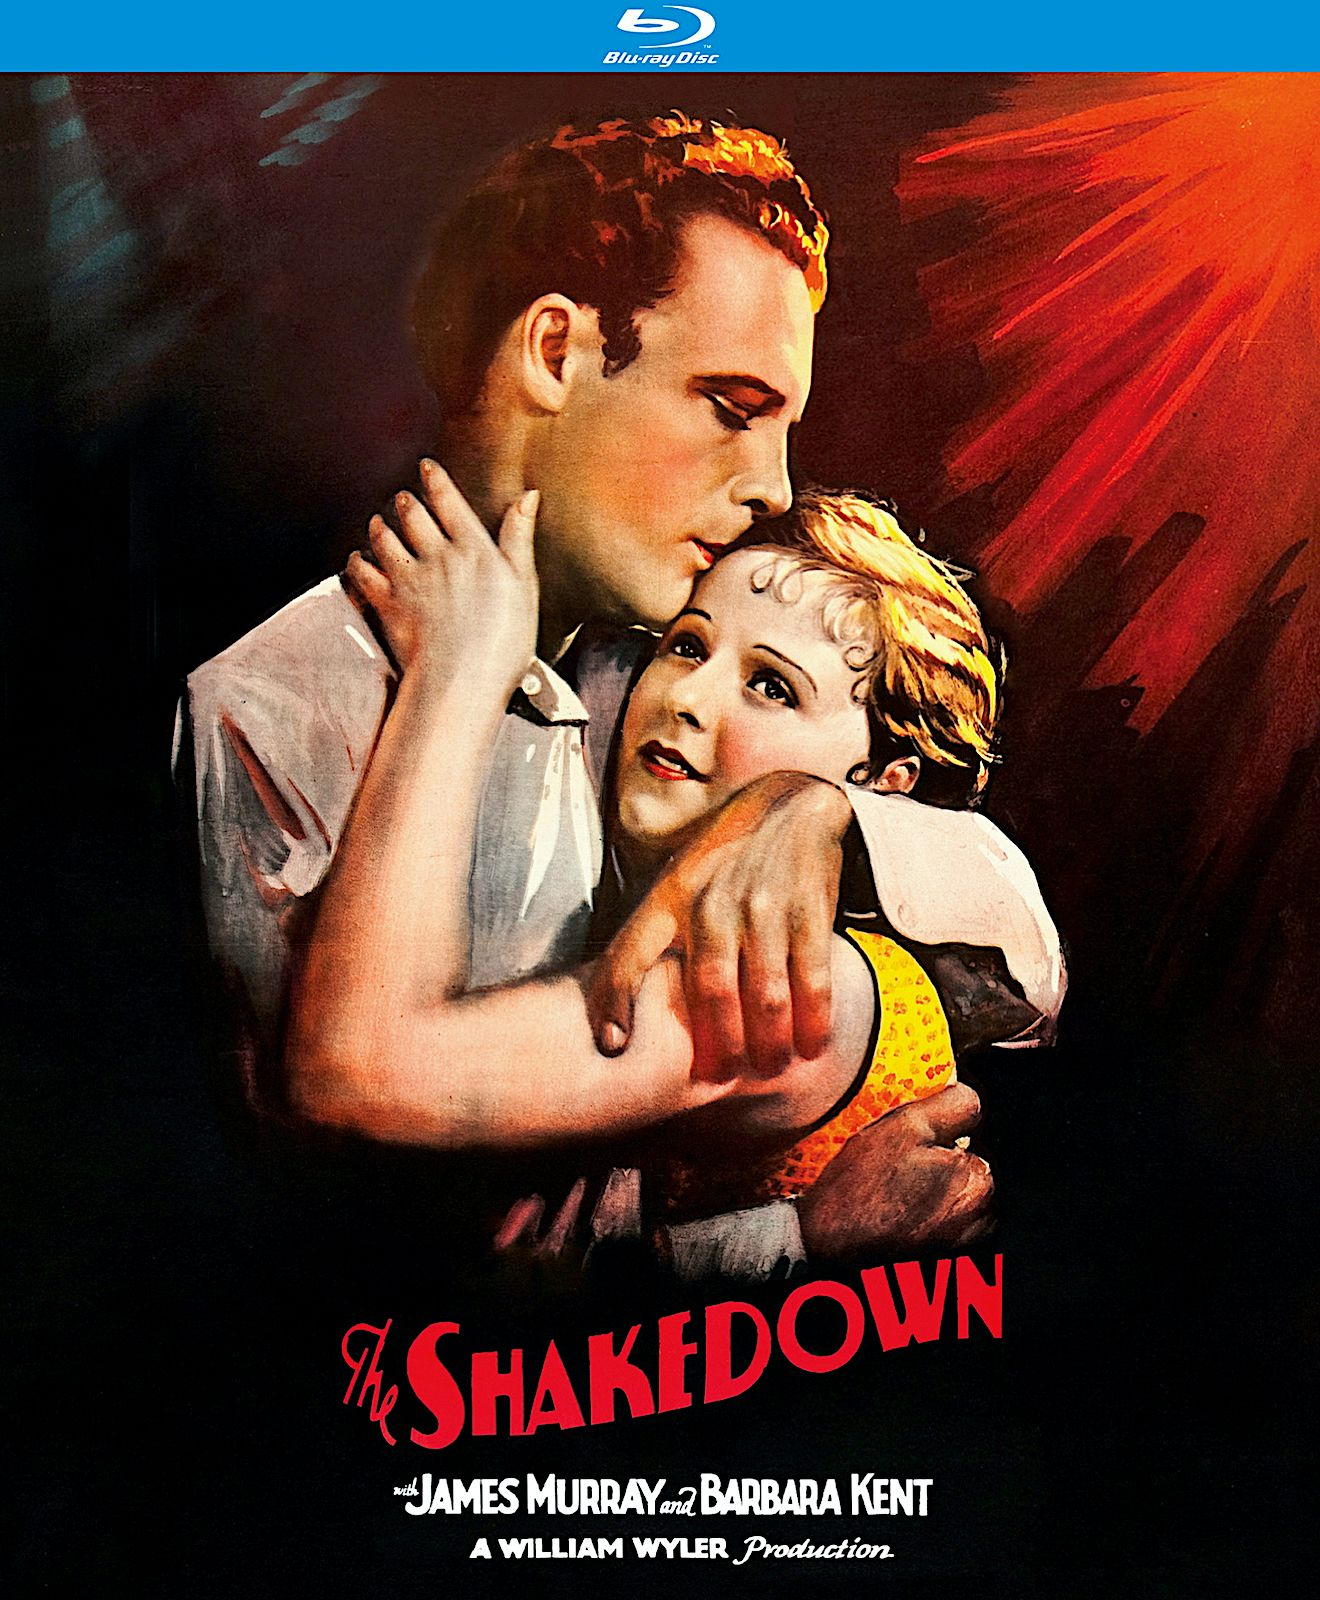 The Shakedown Blu Ray Kino Lorber In 2020 Blu Blu Ray Movie Posters